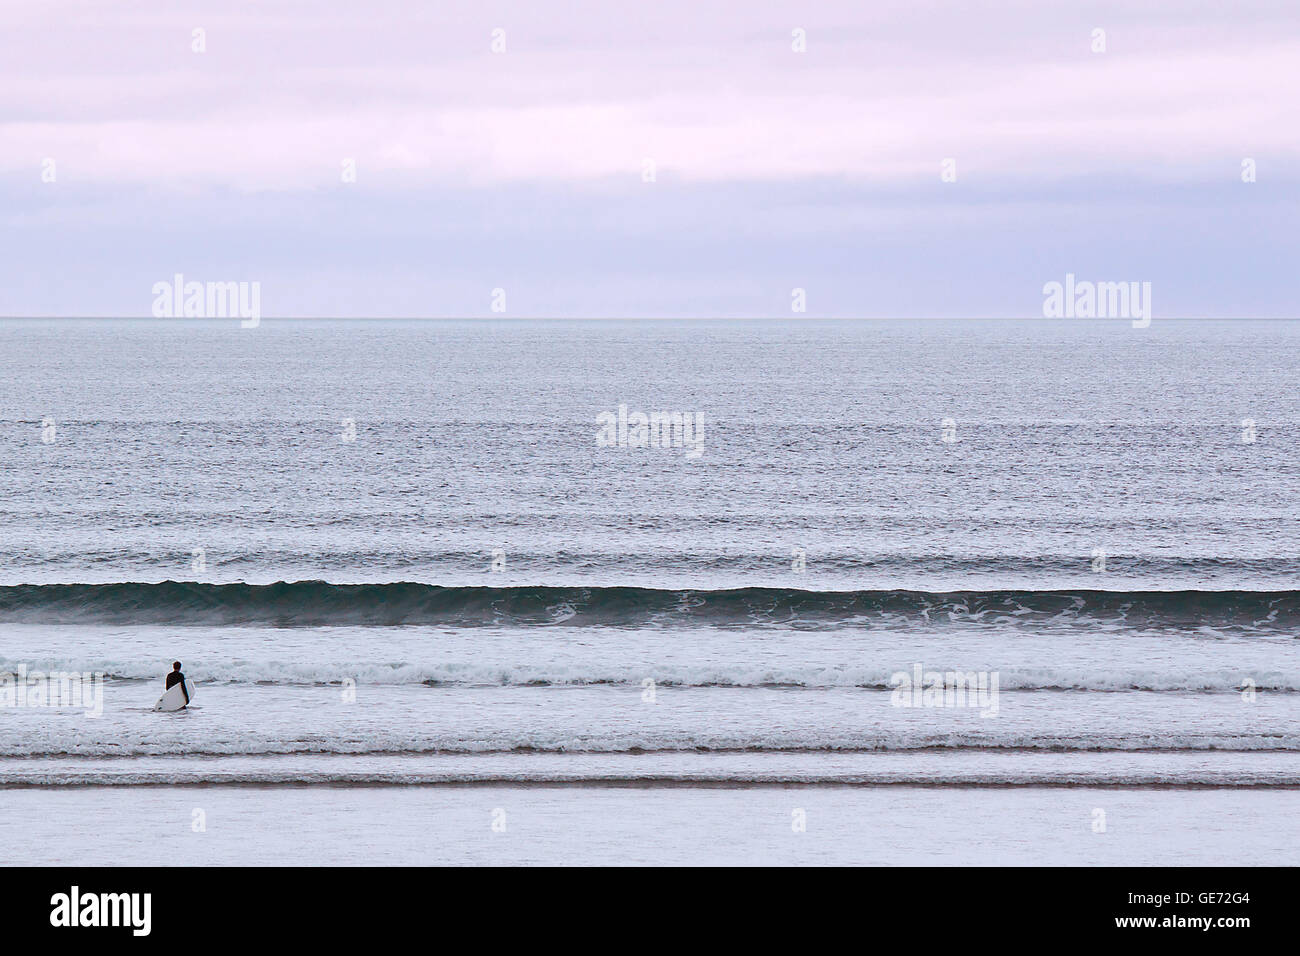 Lone Surfer on the Atlantic Ocean, Sligo, West Coast, Ireland - Stock Image